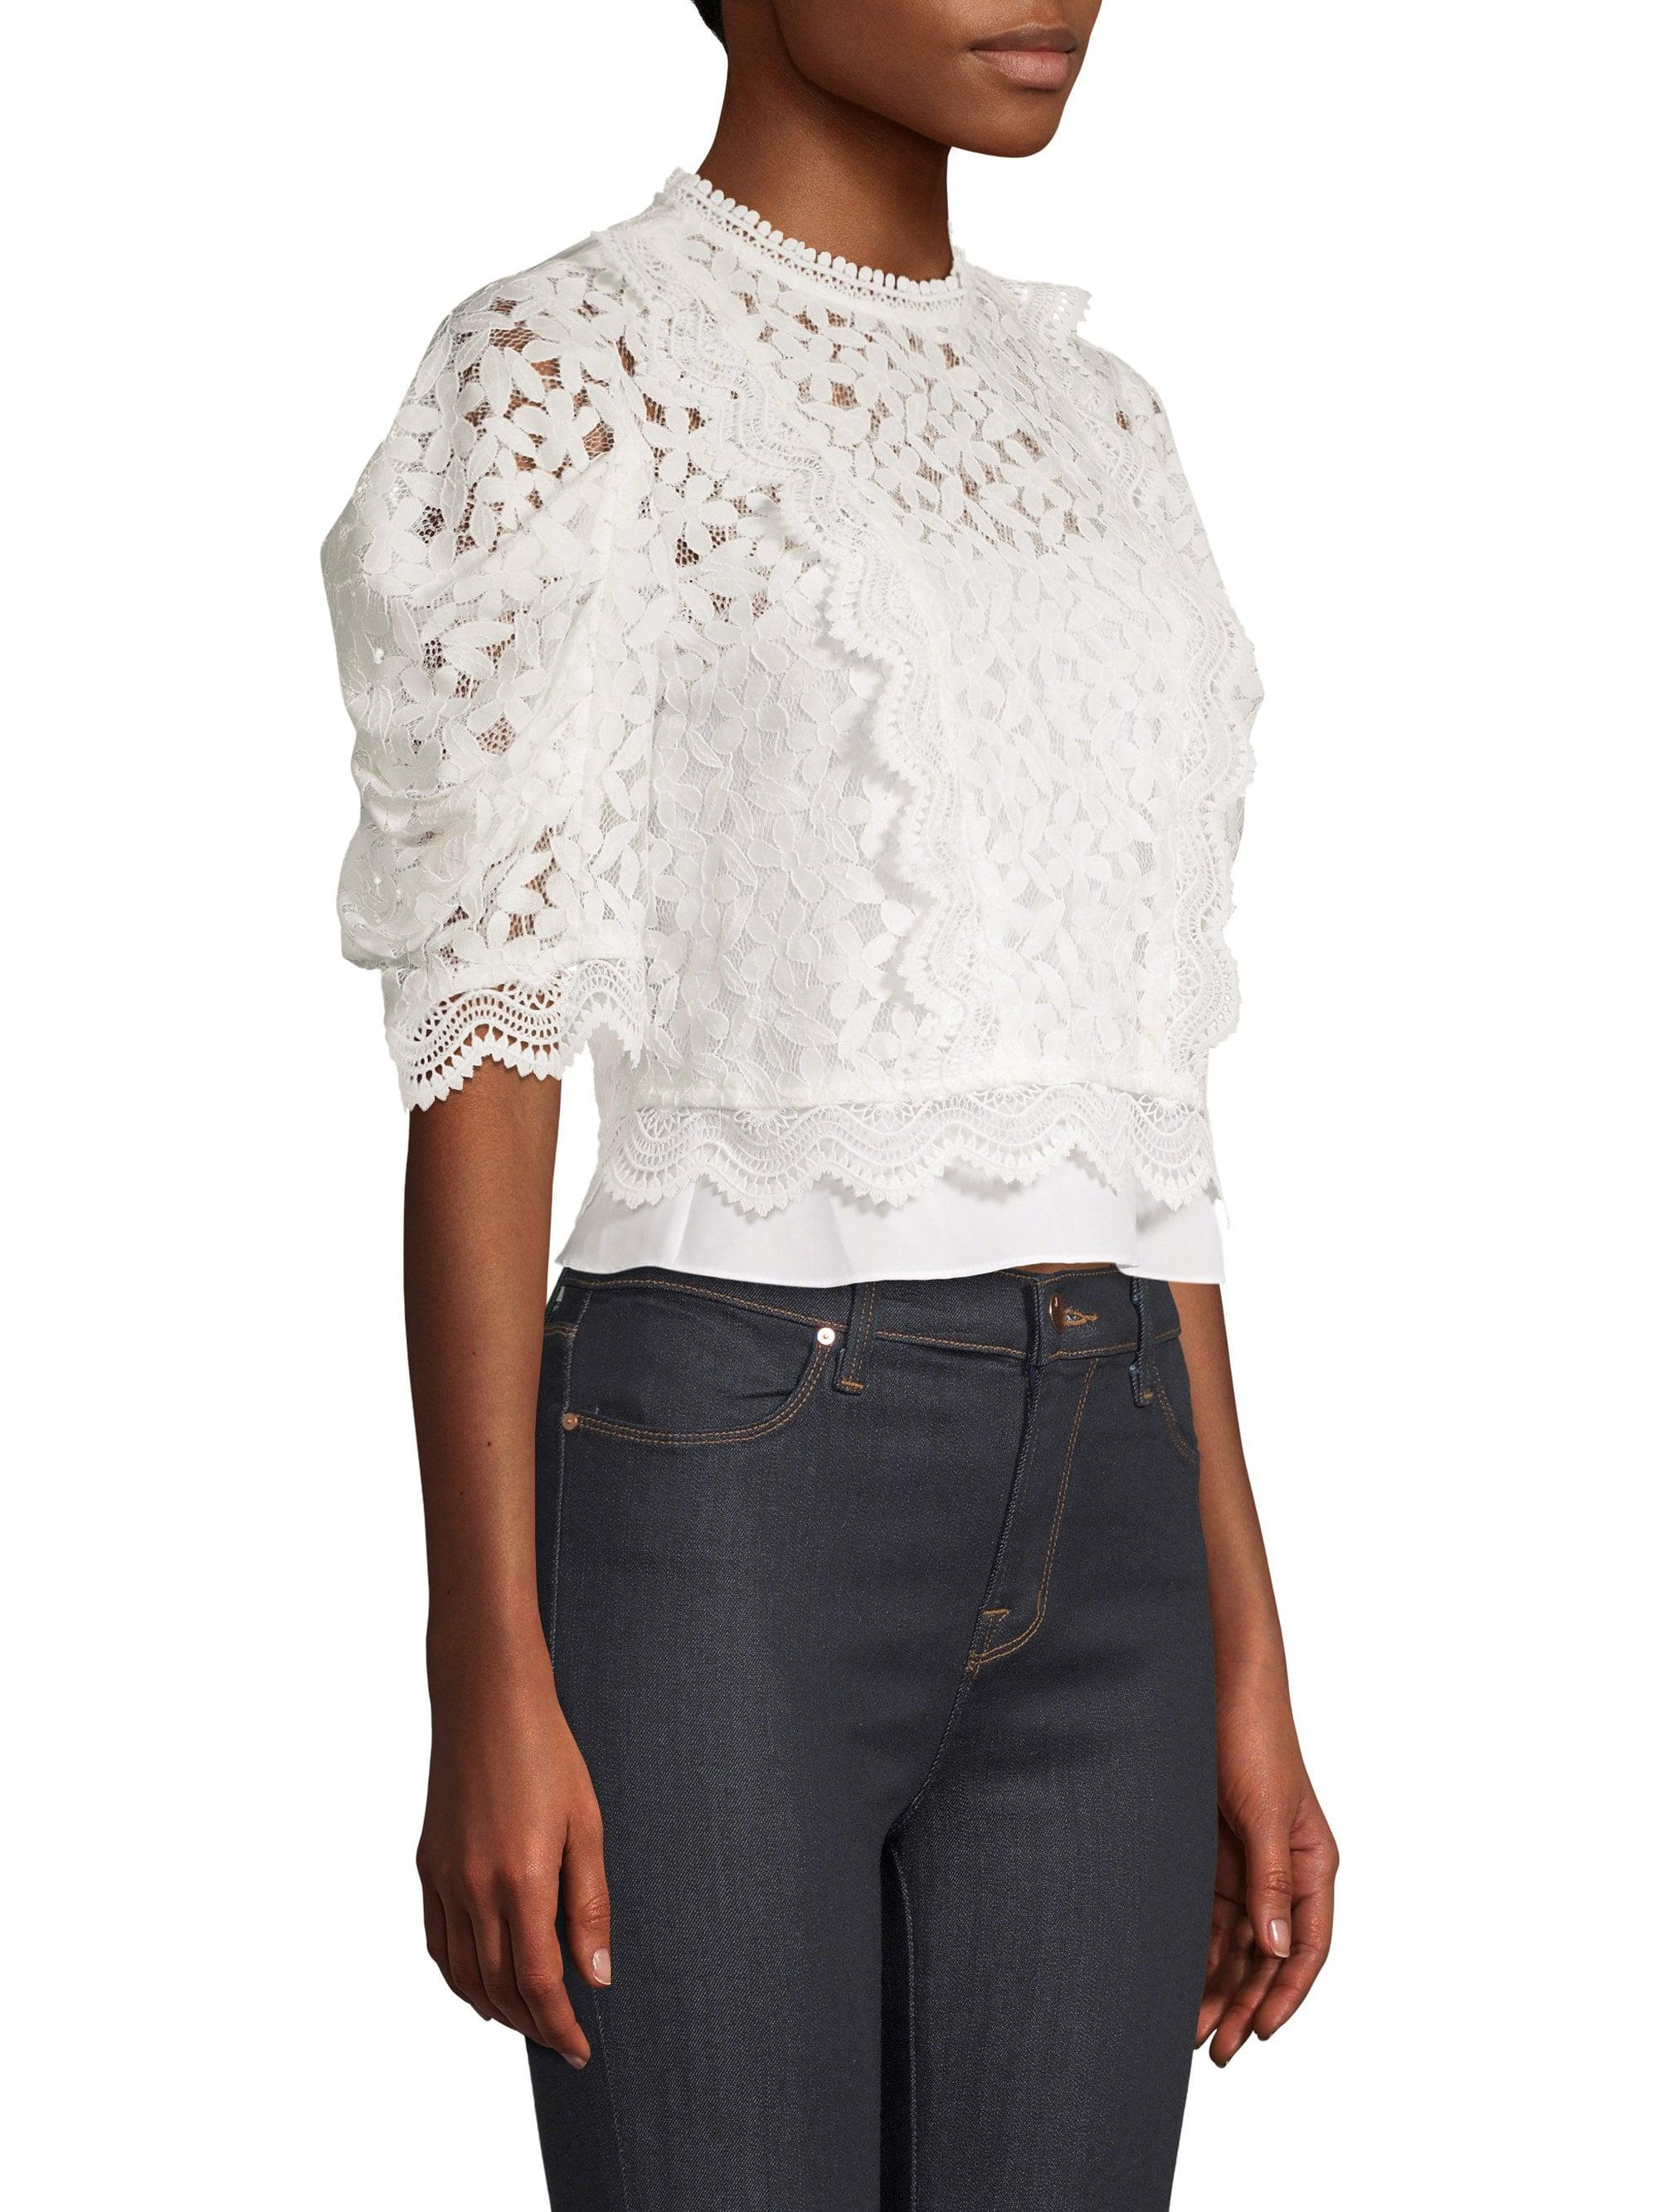 673622ae4c783e ... Felicity Floral Lace Puff-sleeve Top - Lyst. View fullscreen